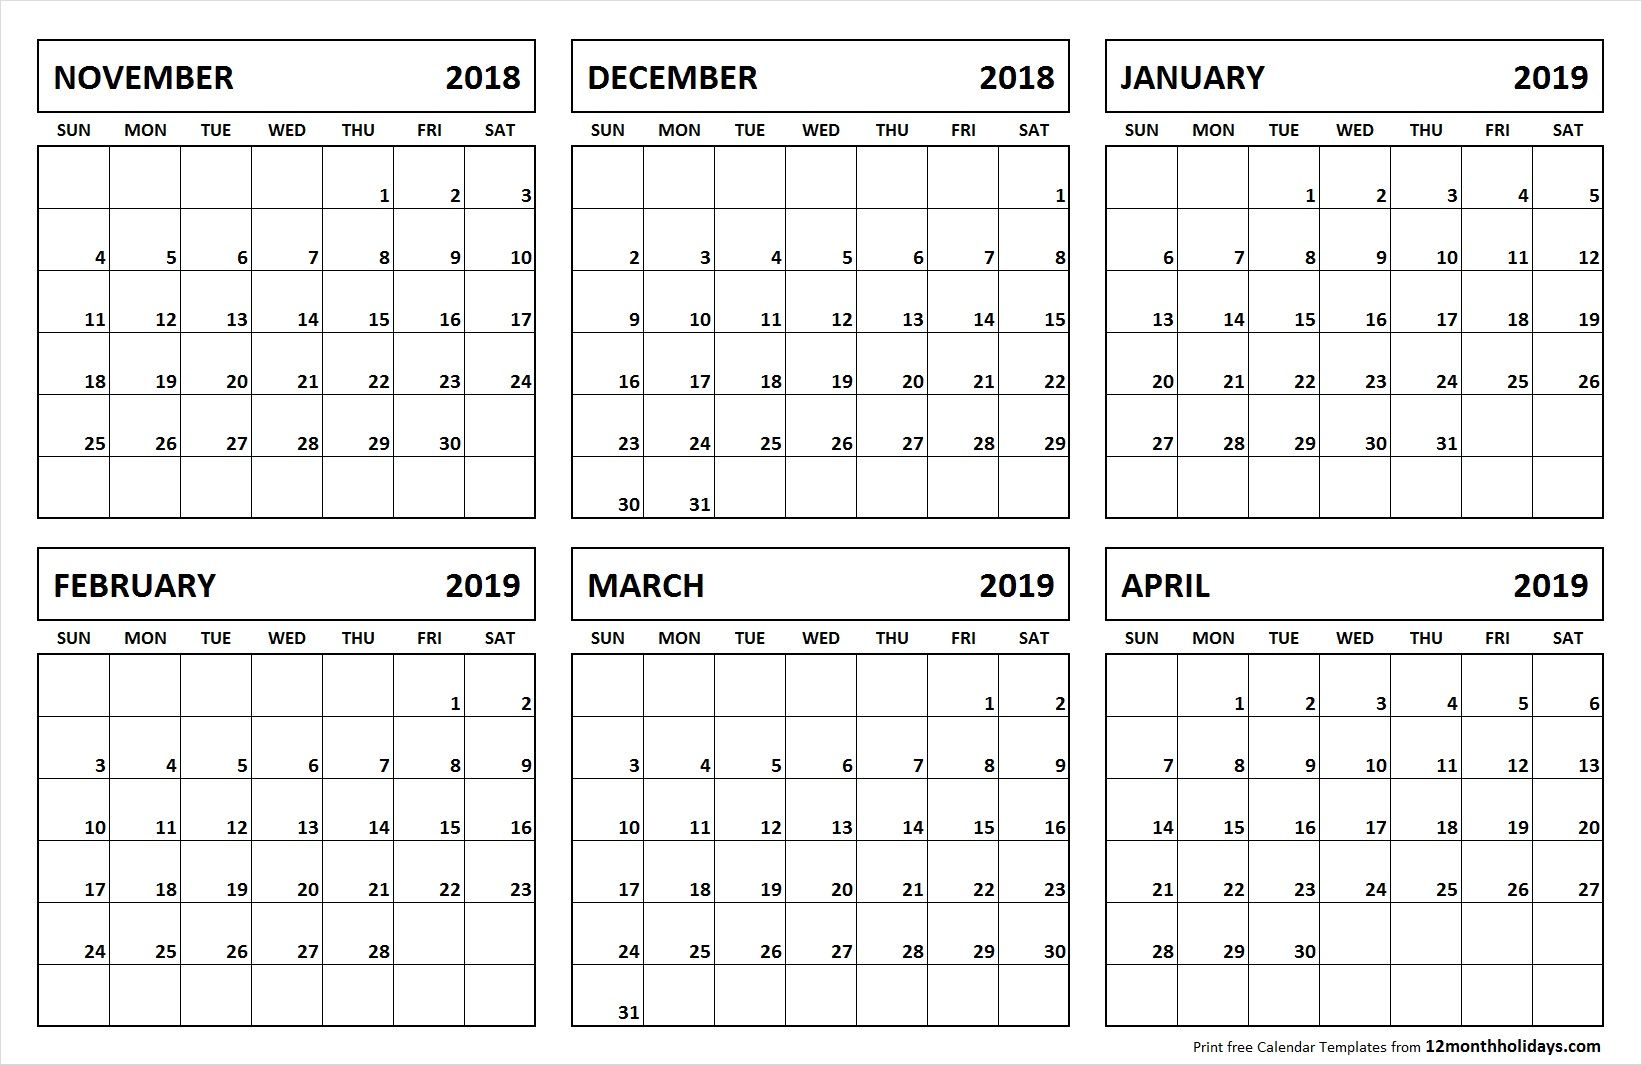 6 Month Calendar November 2018 April 2019 | November 2018 To